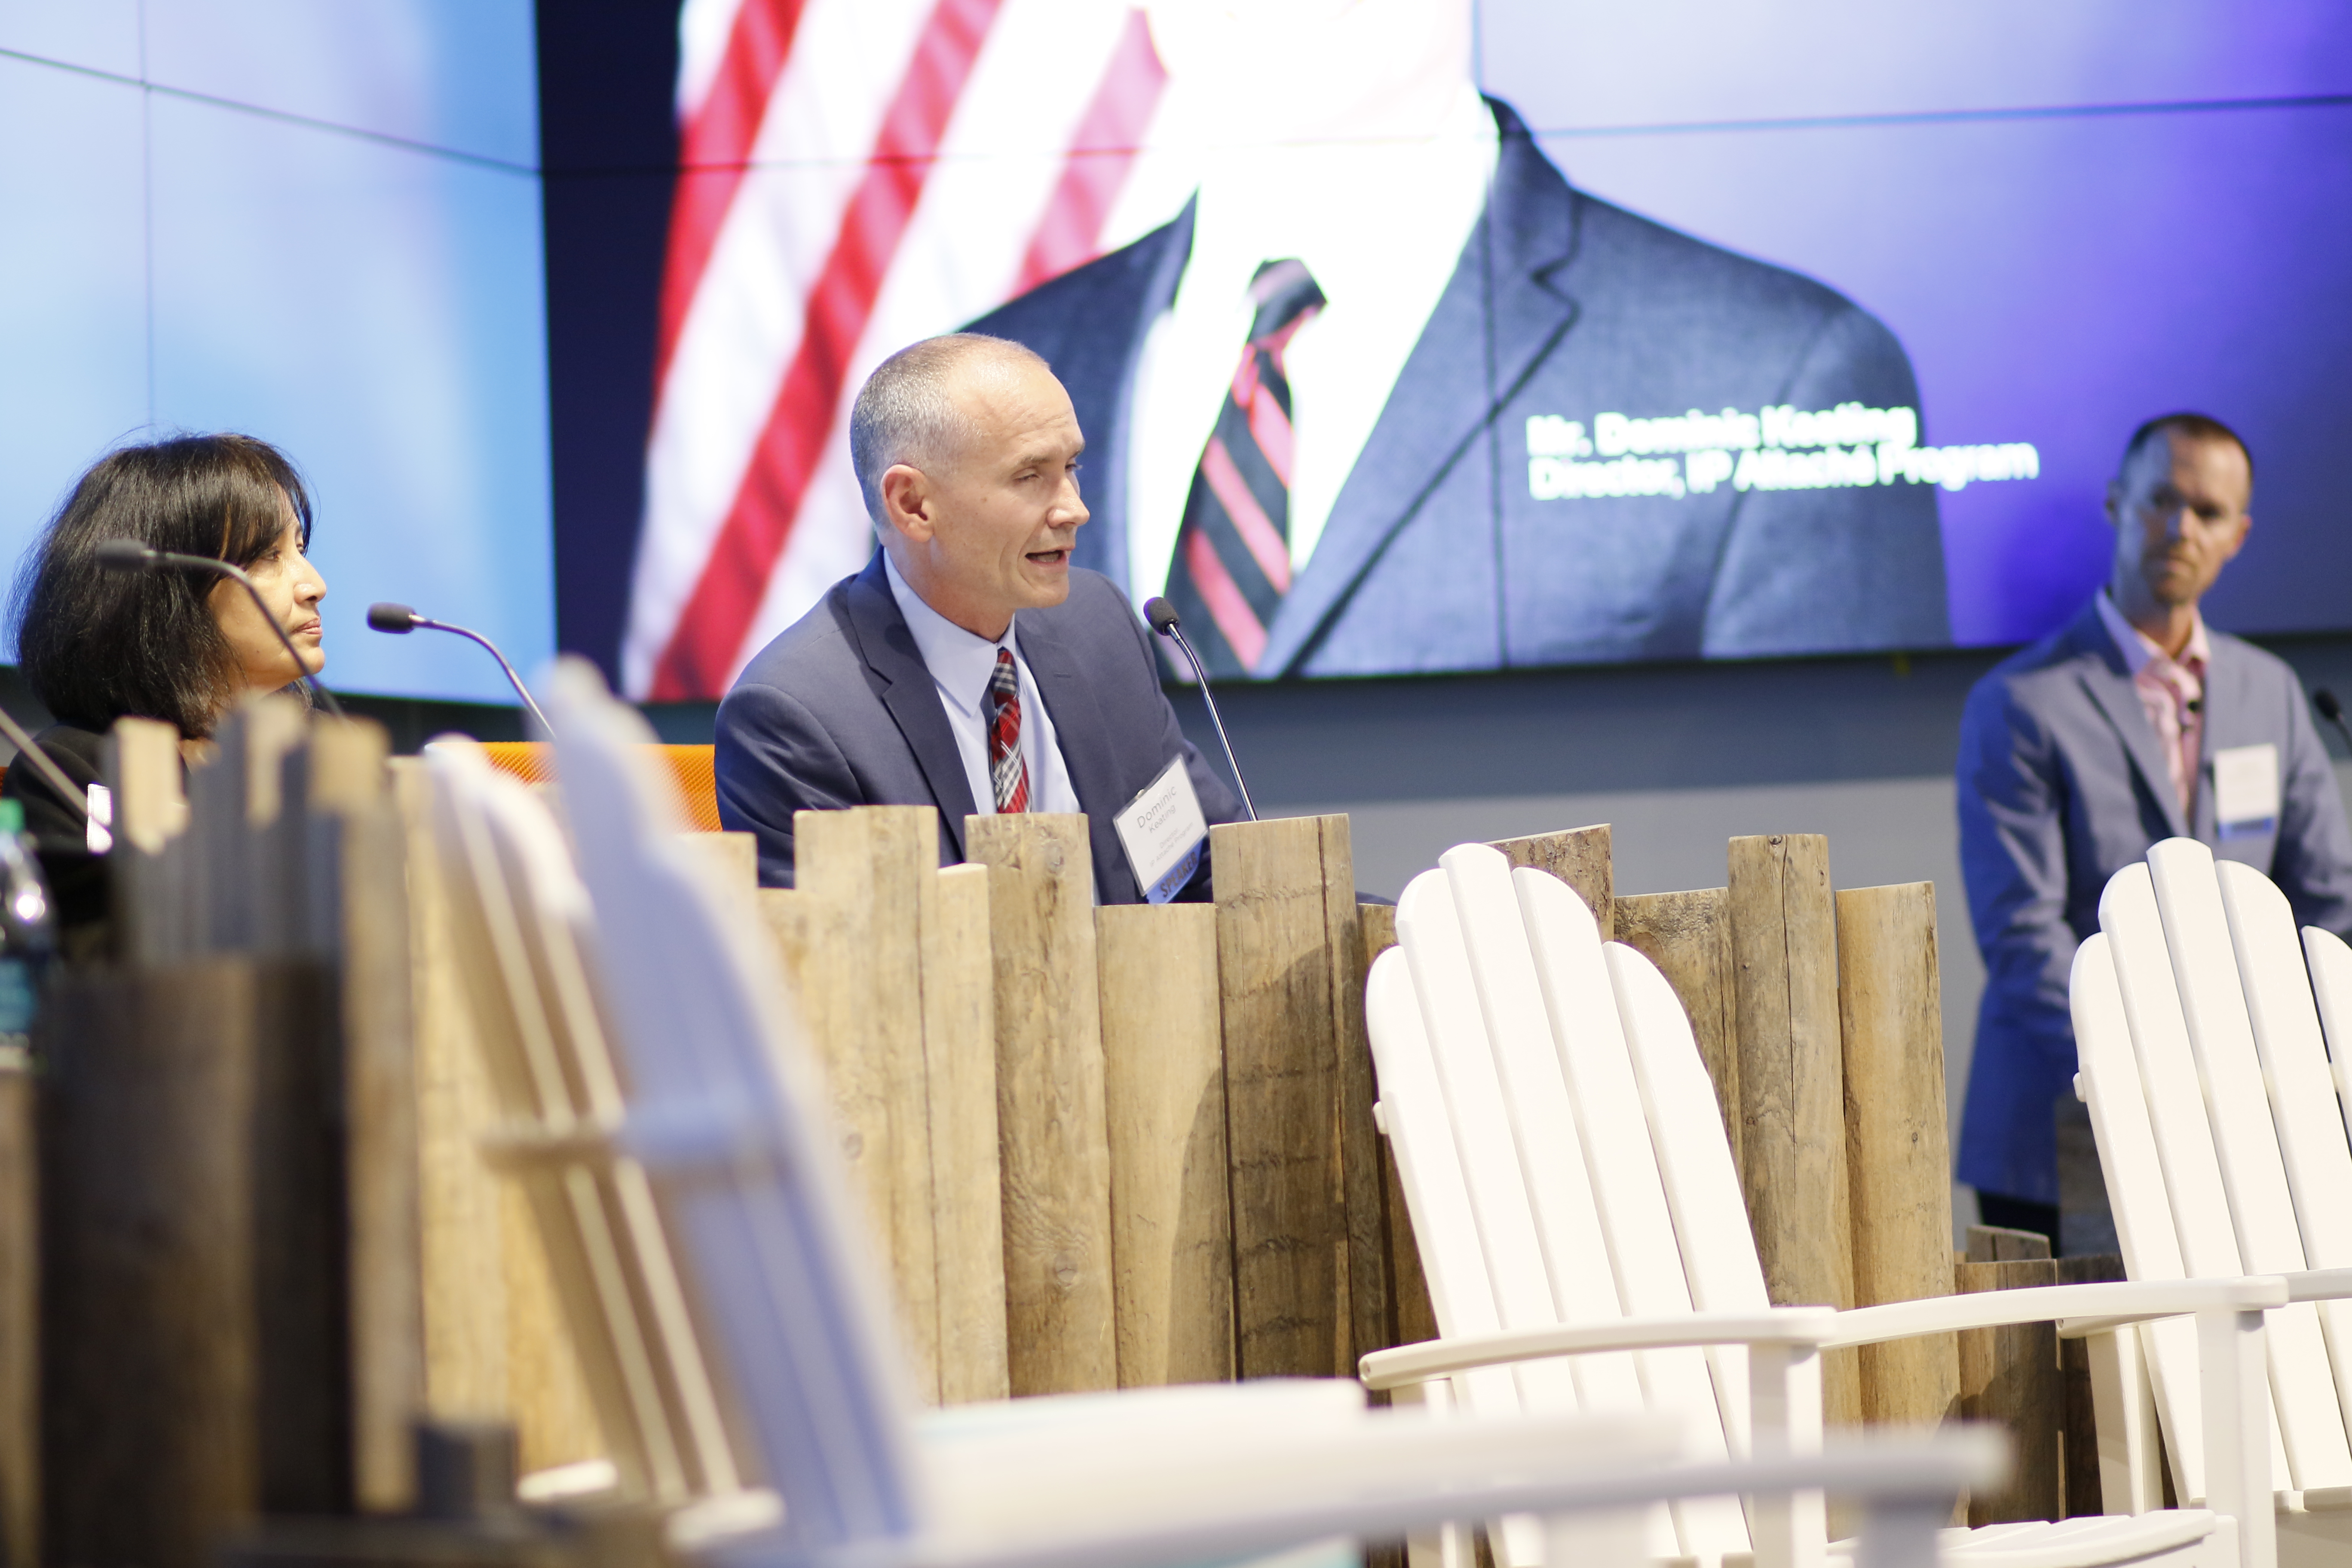 US Patent and Trademark IP Attachés Advise How to Protect